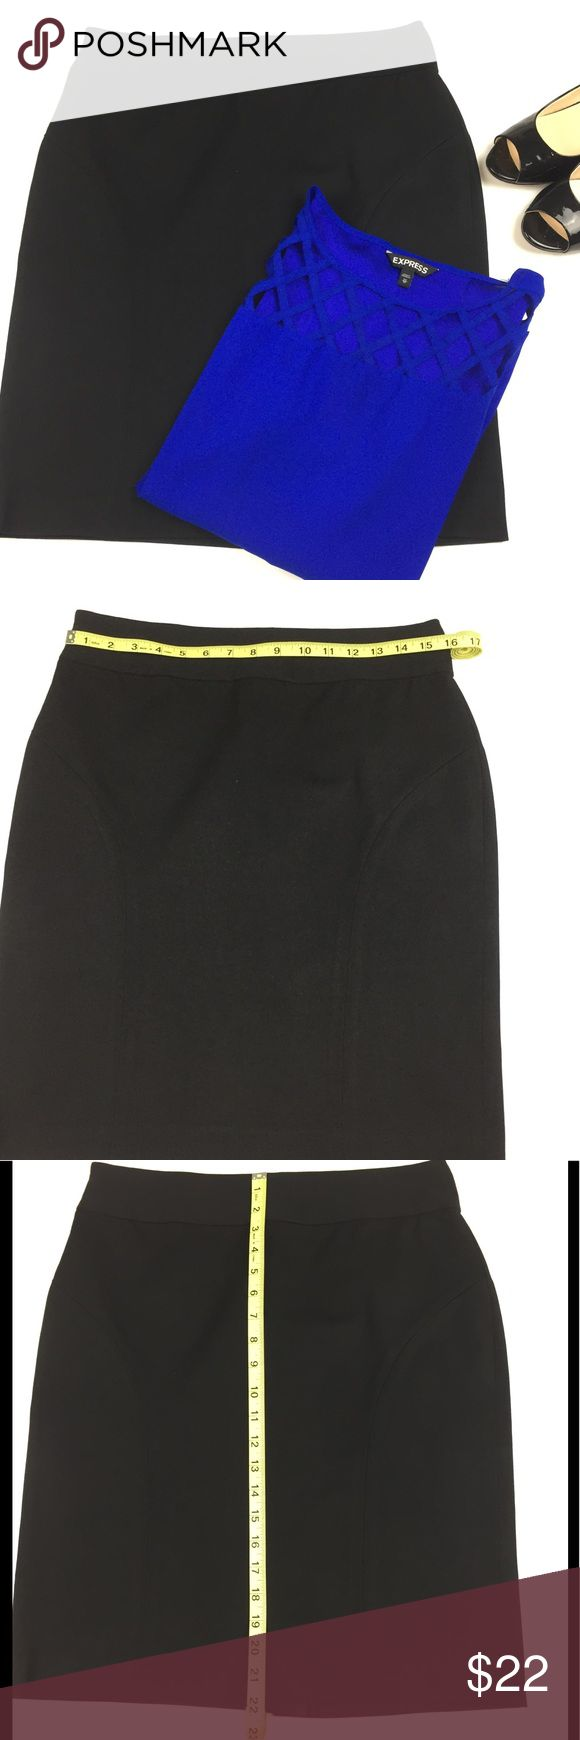 Banana Republic Black Straight Skirt l 8 This new black Banana Republic straight style skirt, size 8, is a must have! This lovely skirt is made of 56% viscose, 39% cotton and 5% spandex. For waist and length measurements see photos. Banana Republic Skirts